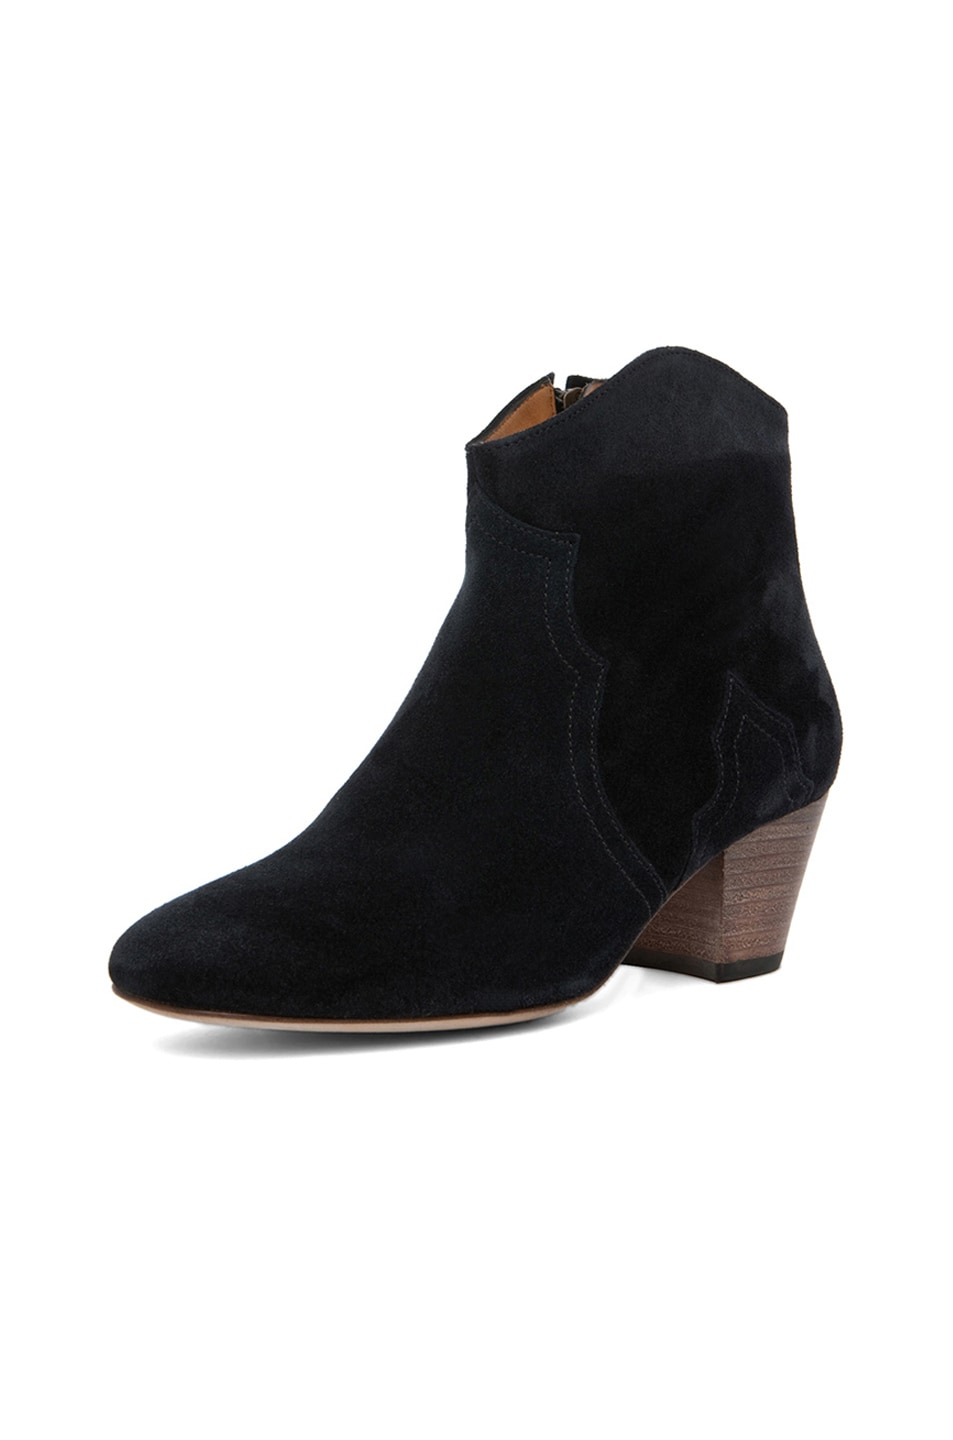 Image 2 of Isabel Marant Dicker Calfskin Velvet Leather Booties in Anthracite